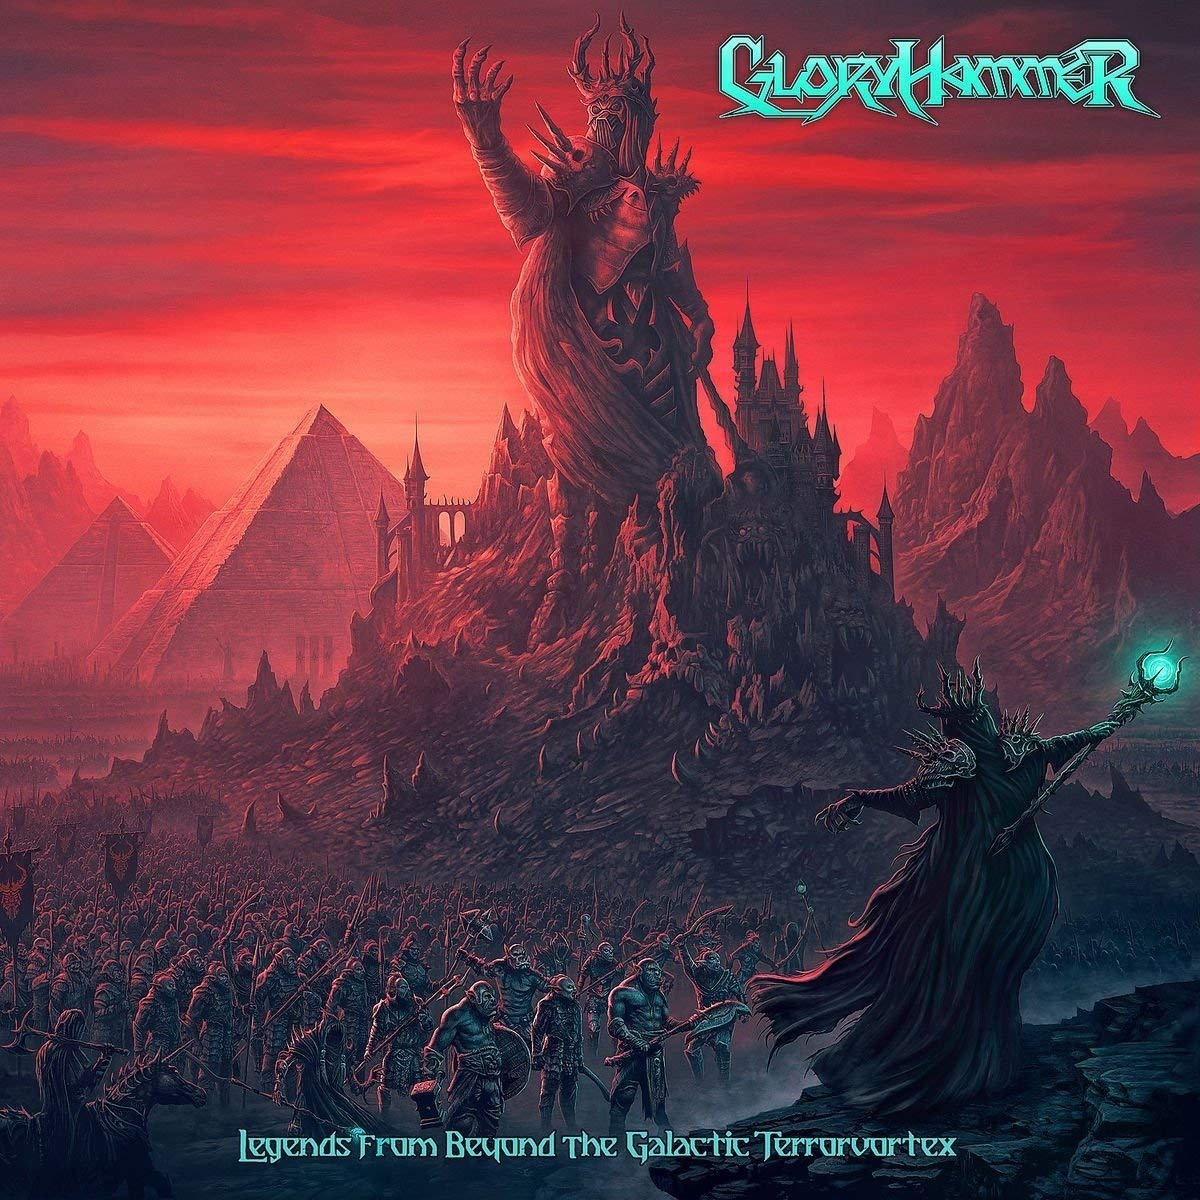 gloryhammer legends from beyond the galactic terrovortex album cover